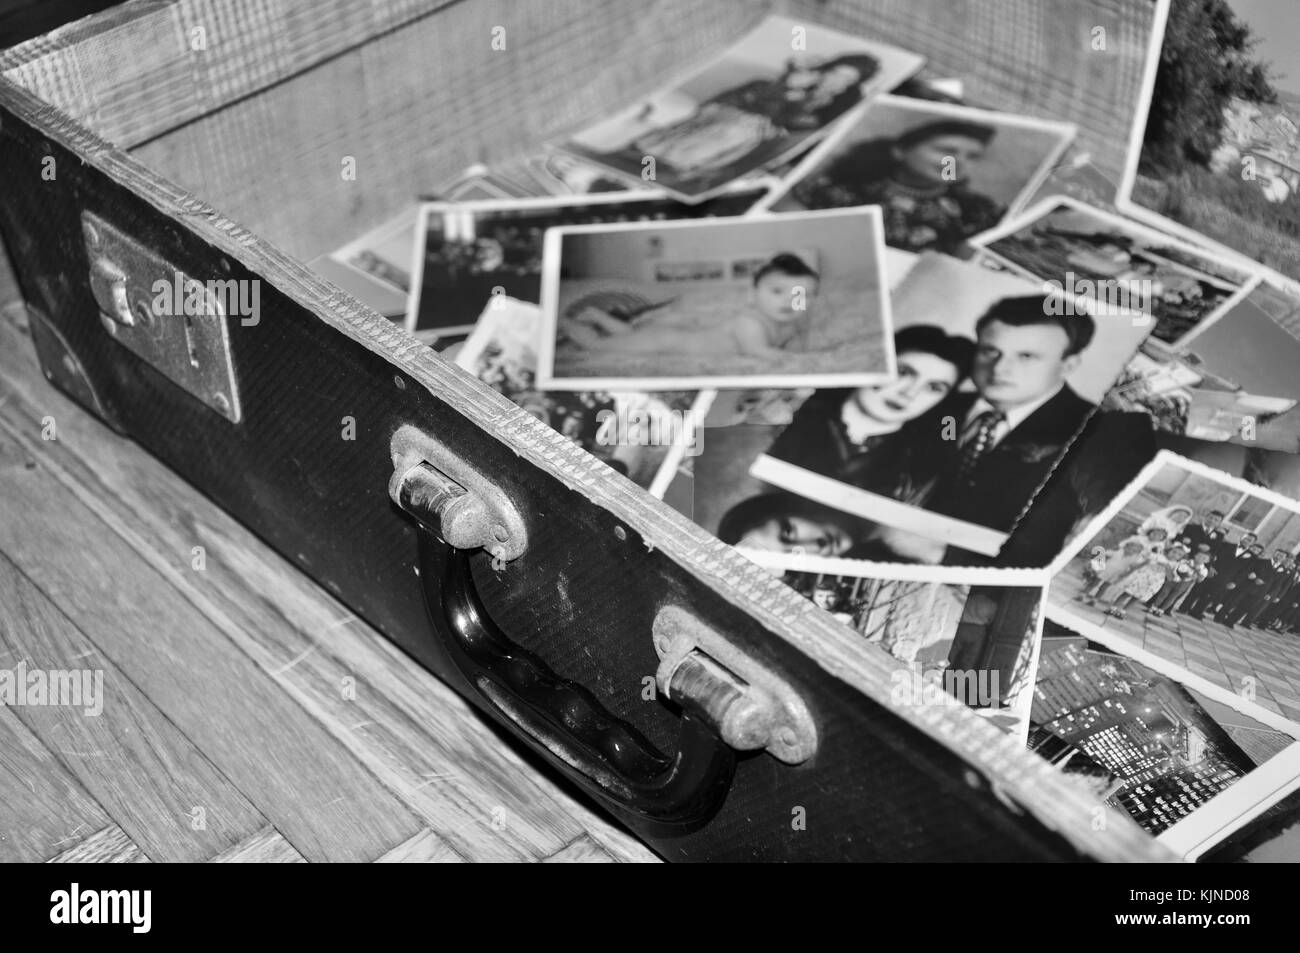 Memories Like photos in old,vintage suitcase - Stock Image